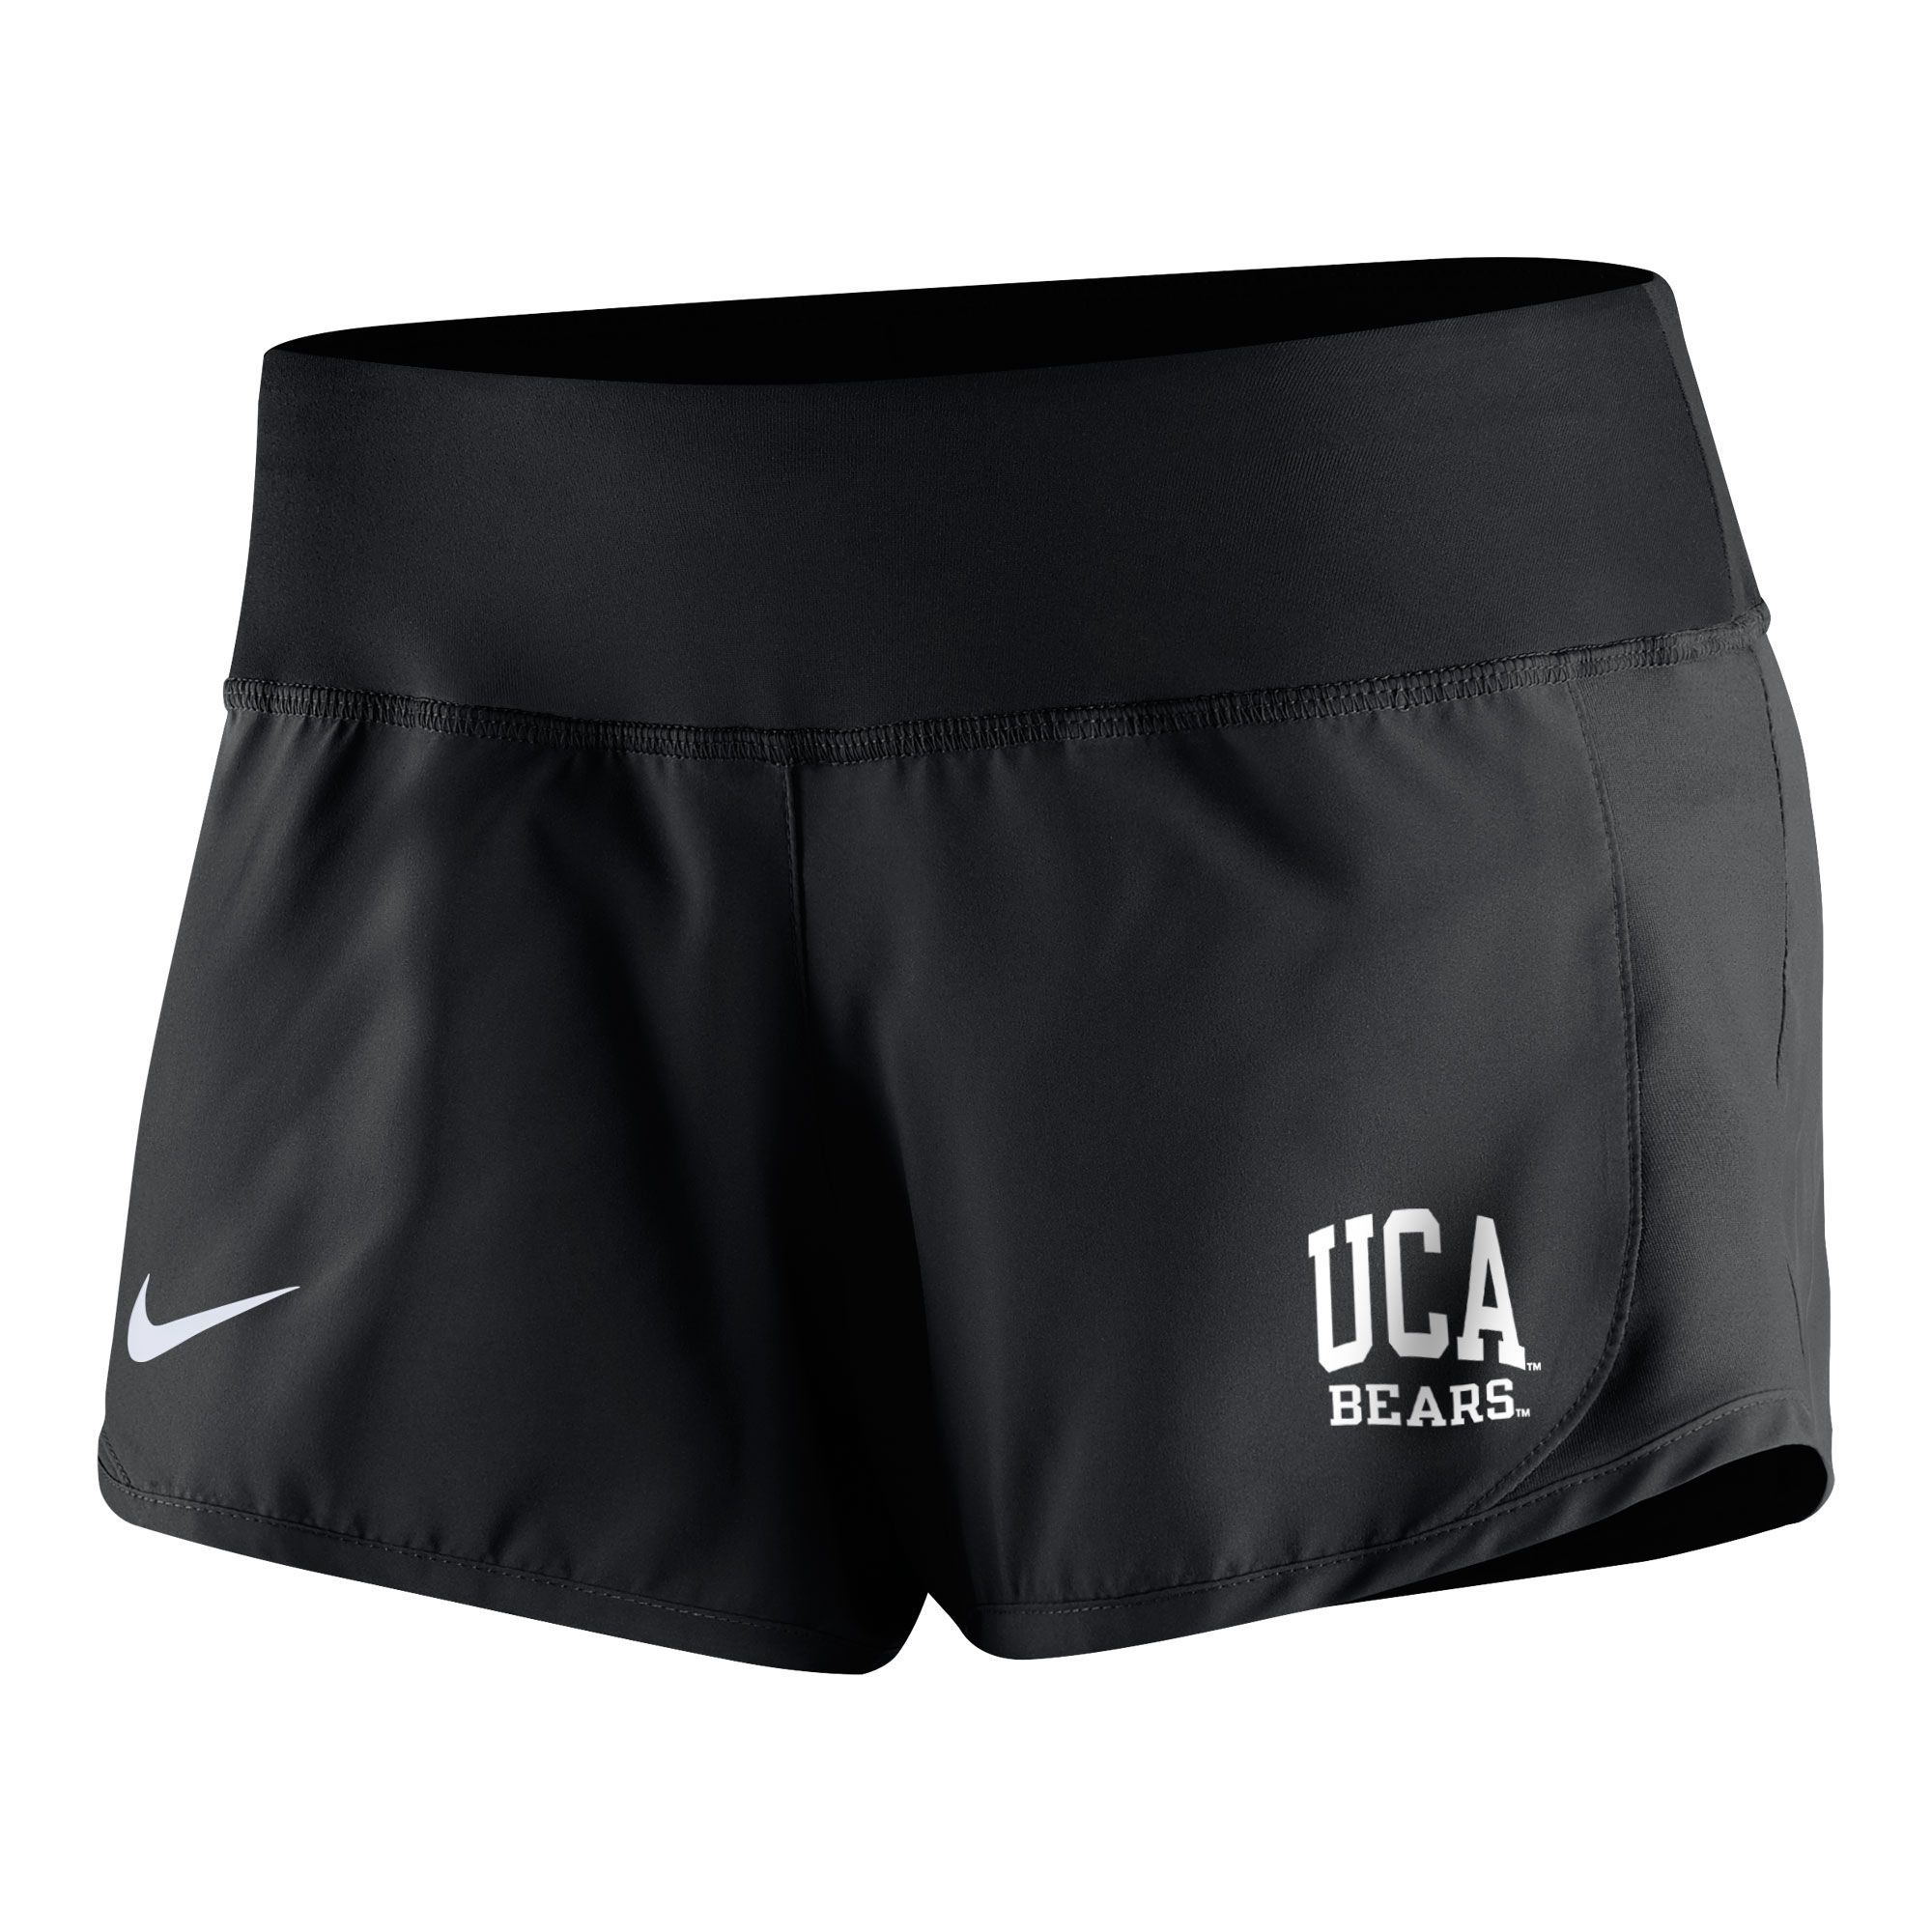 Gear Up Crew Shorts